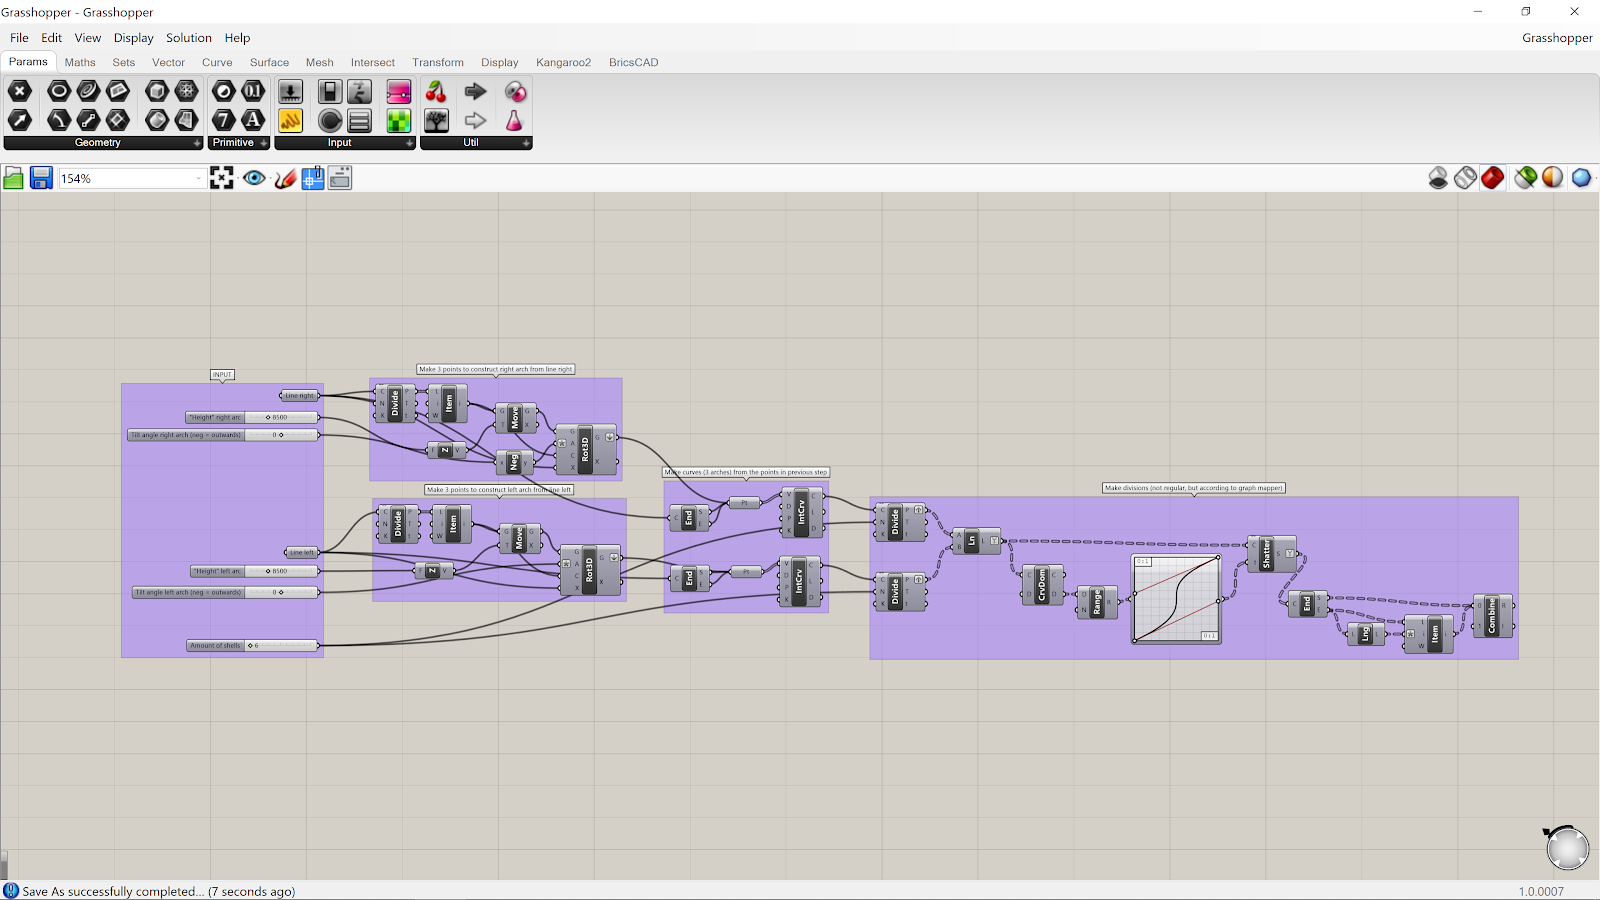 visual programming BIM data